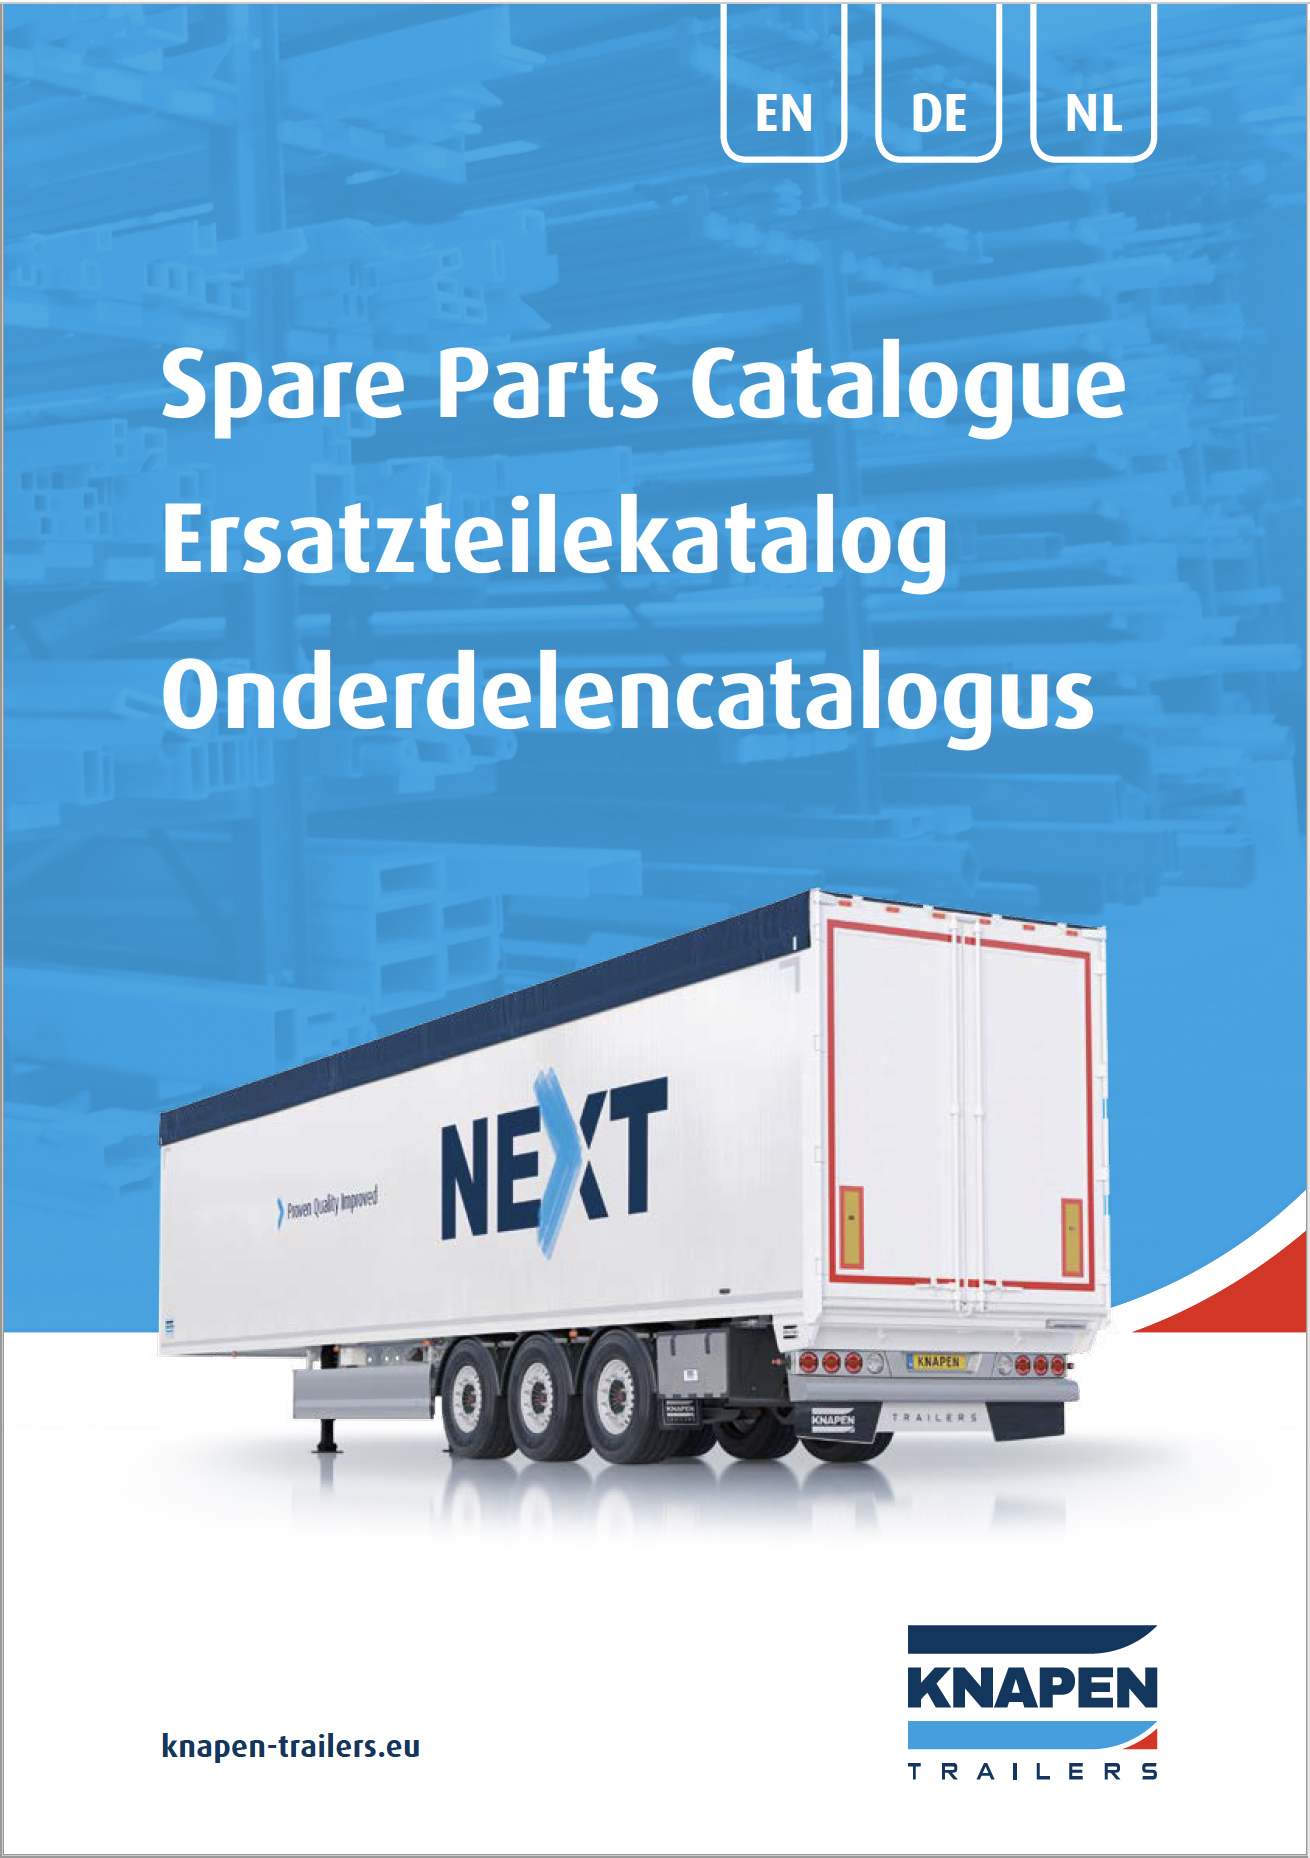 Spare parts Catalogus.jpg